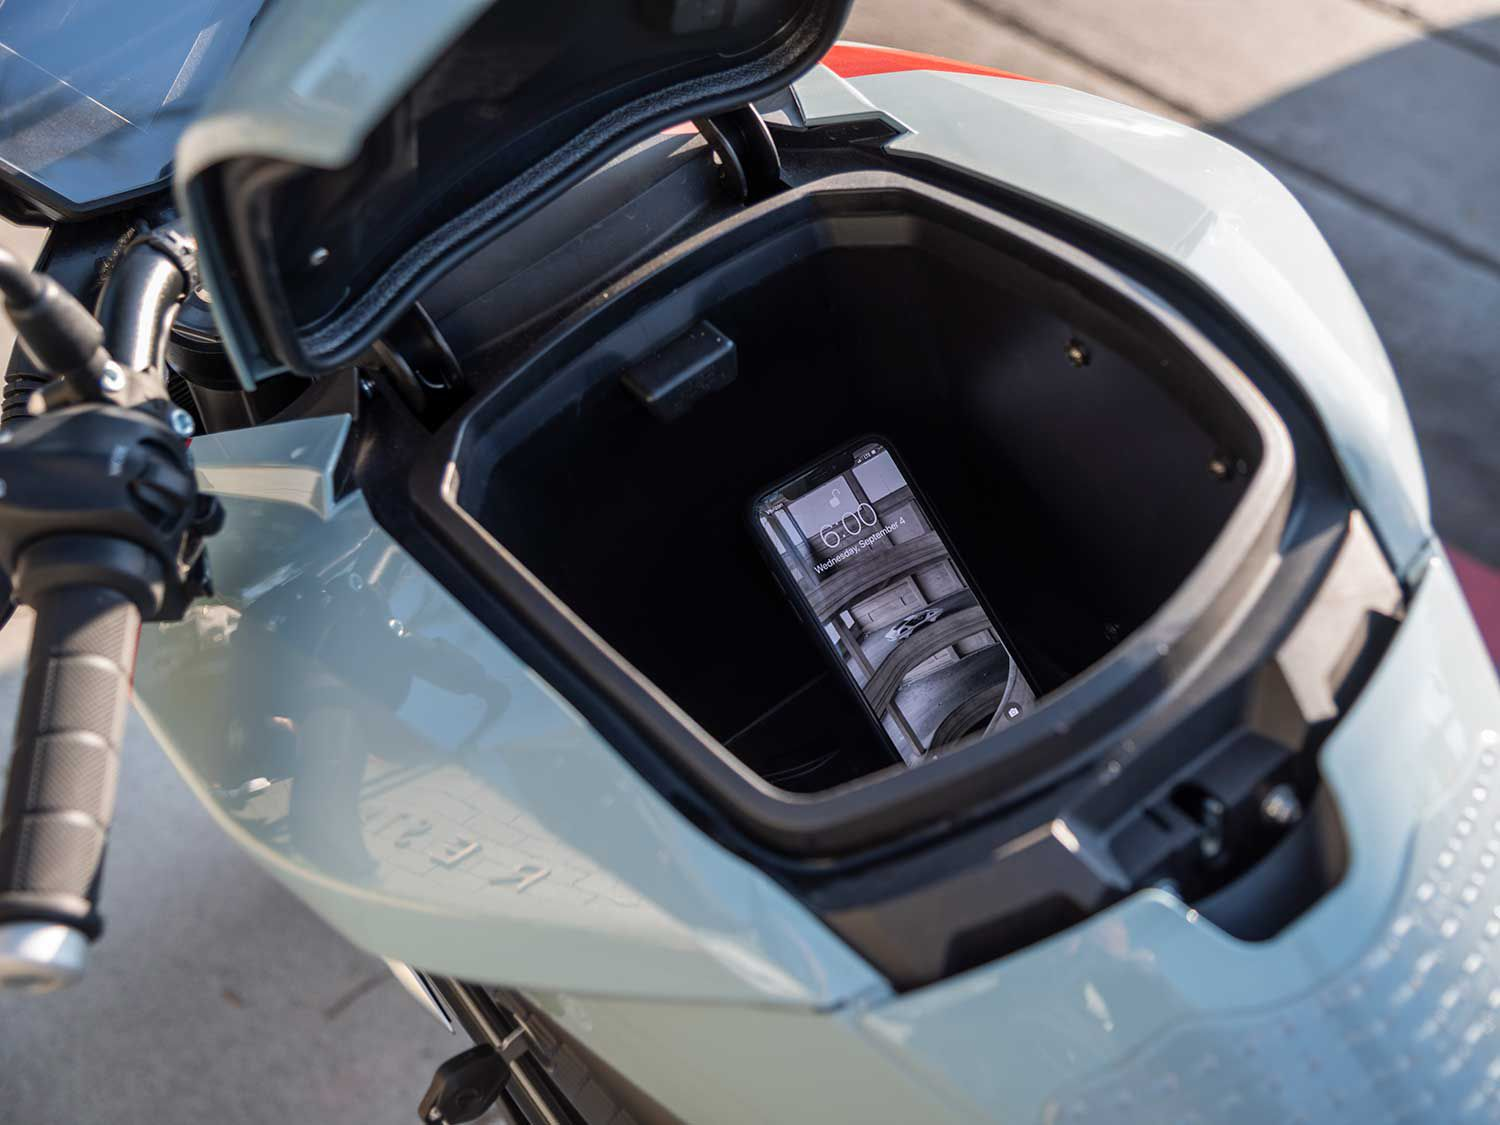 The SR/F's storage cubby can charge your phone while you zip along.